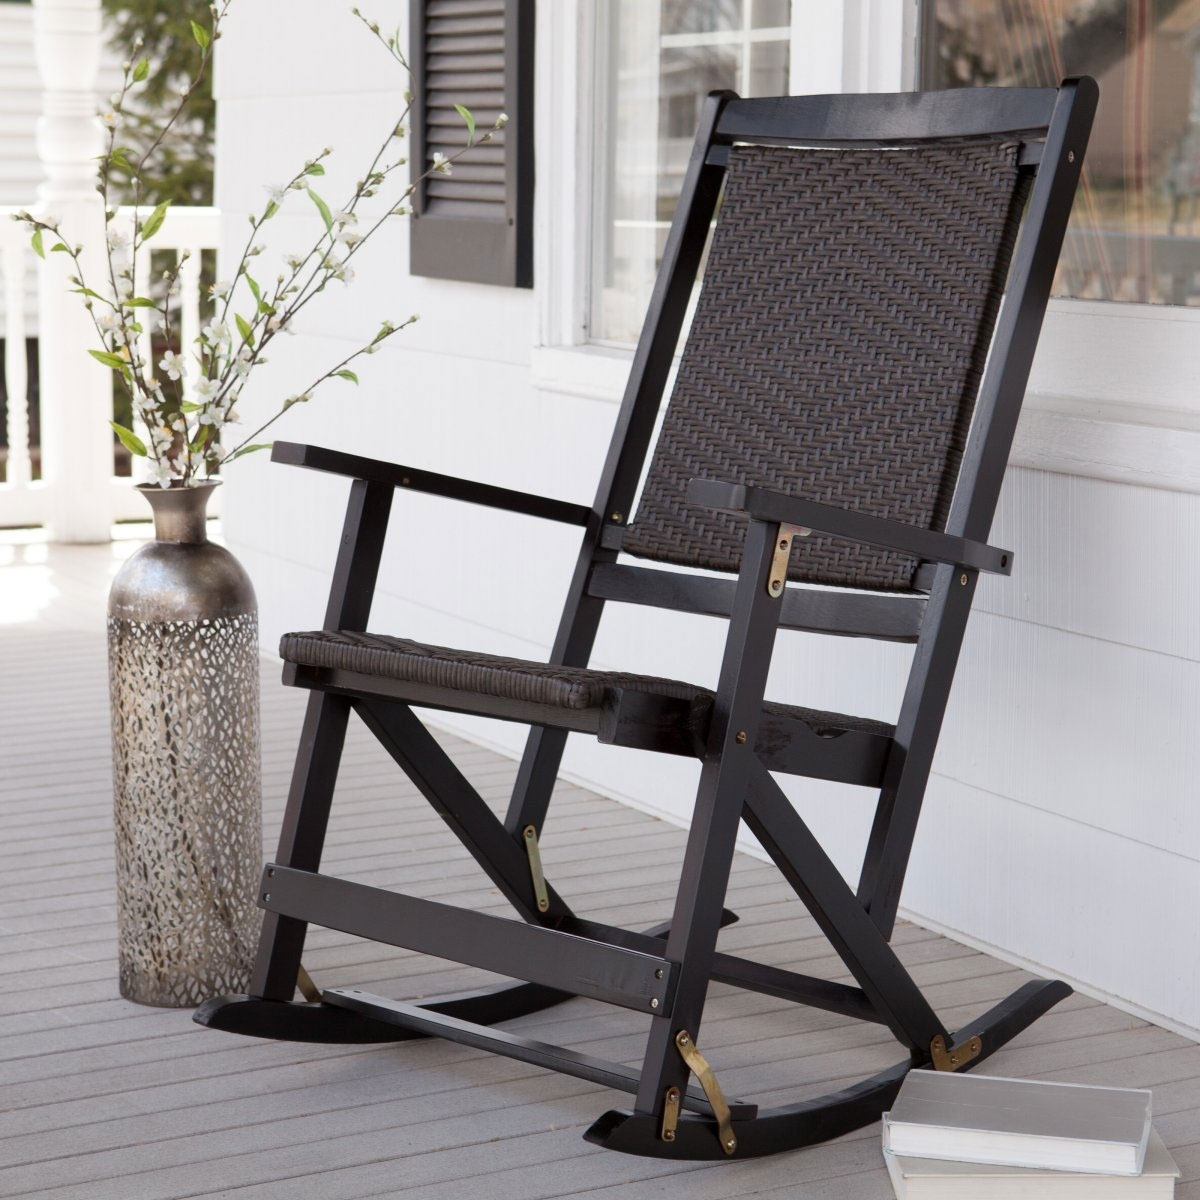 Outdoor Metal Rocking Chair Modern Chairs Quality Interior Lawn Within Vintage Metal Rocking Patio Chairs (View 6 of 15)